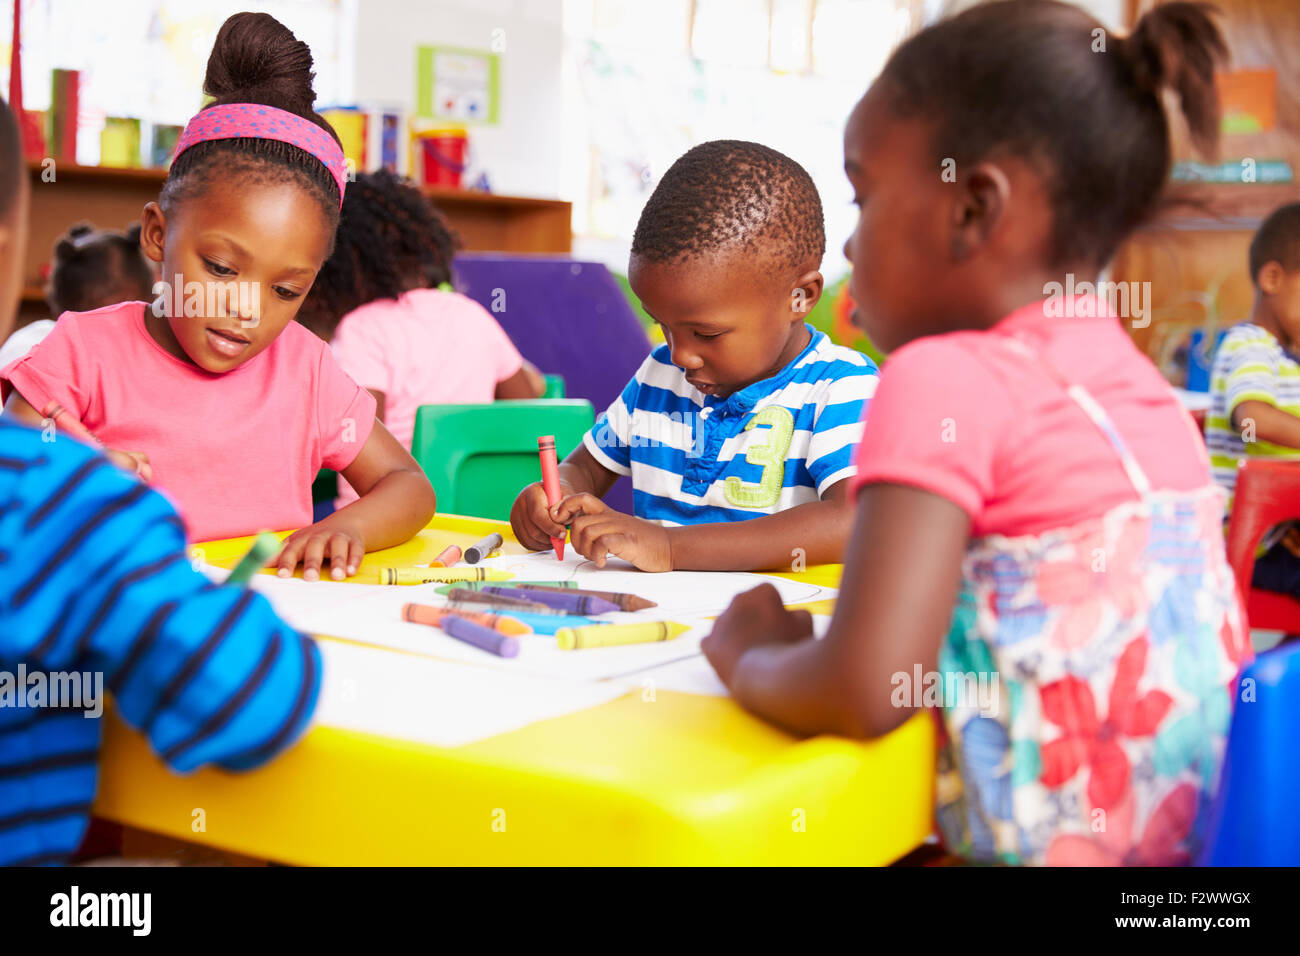 Preschool class in South African township, close-up - Stock Image